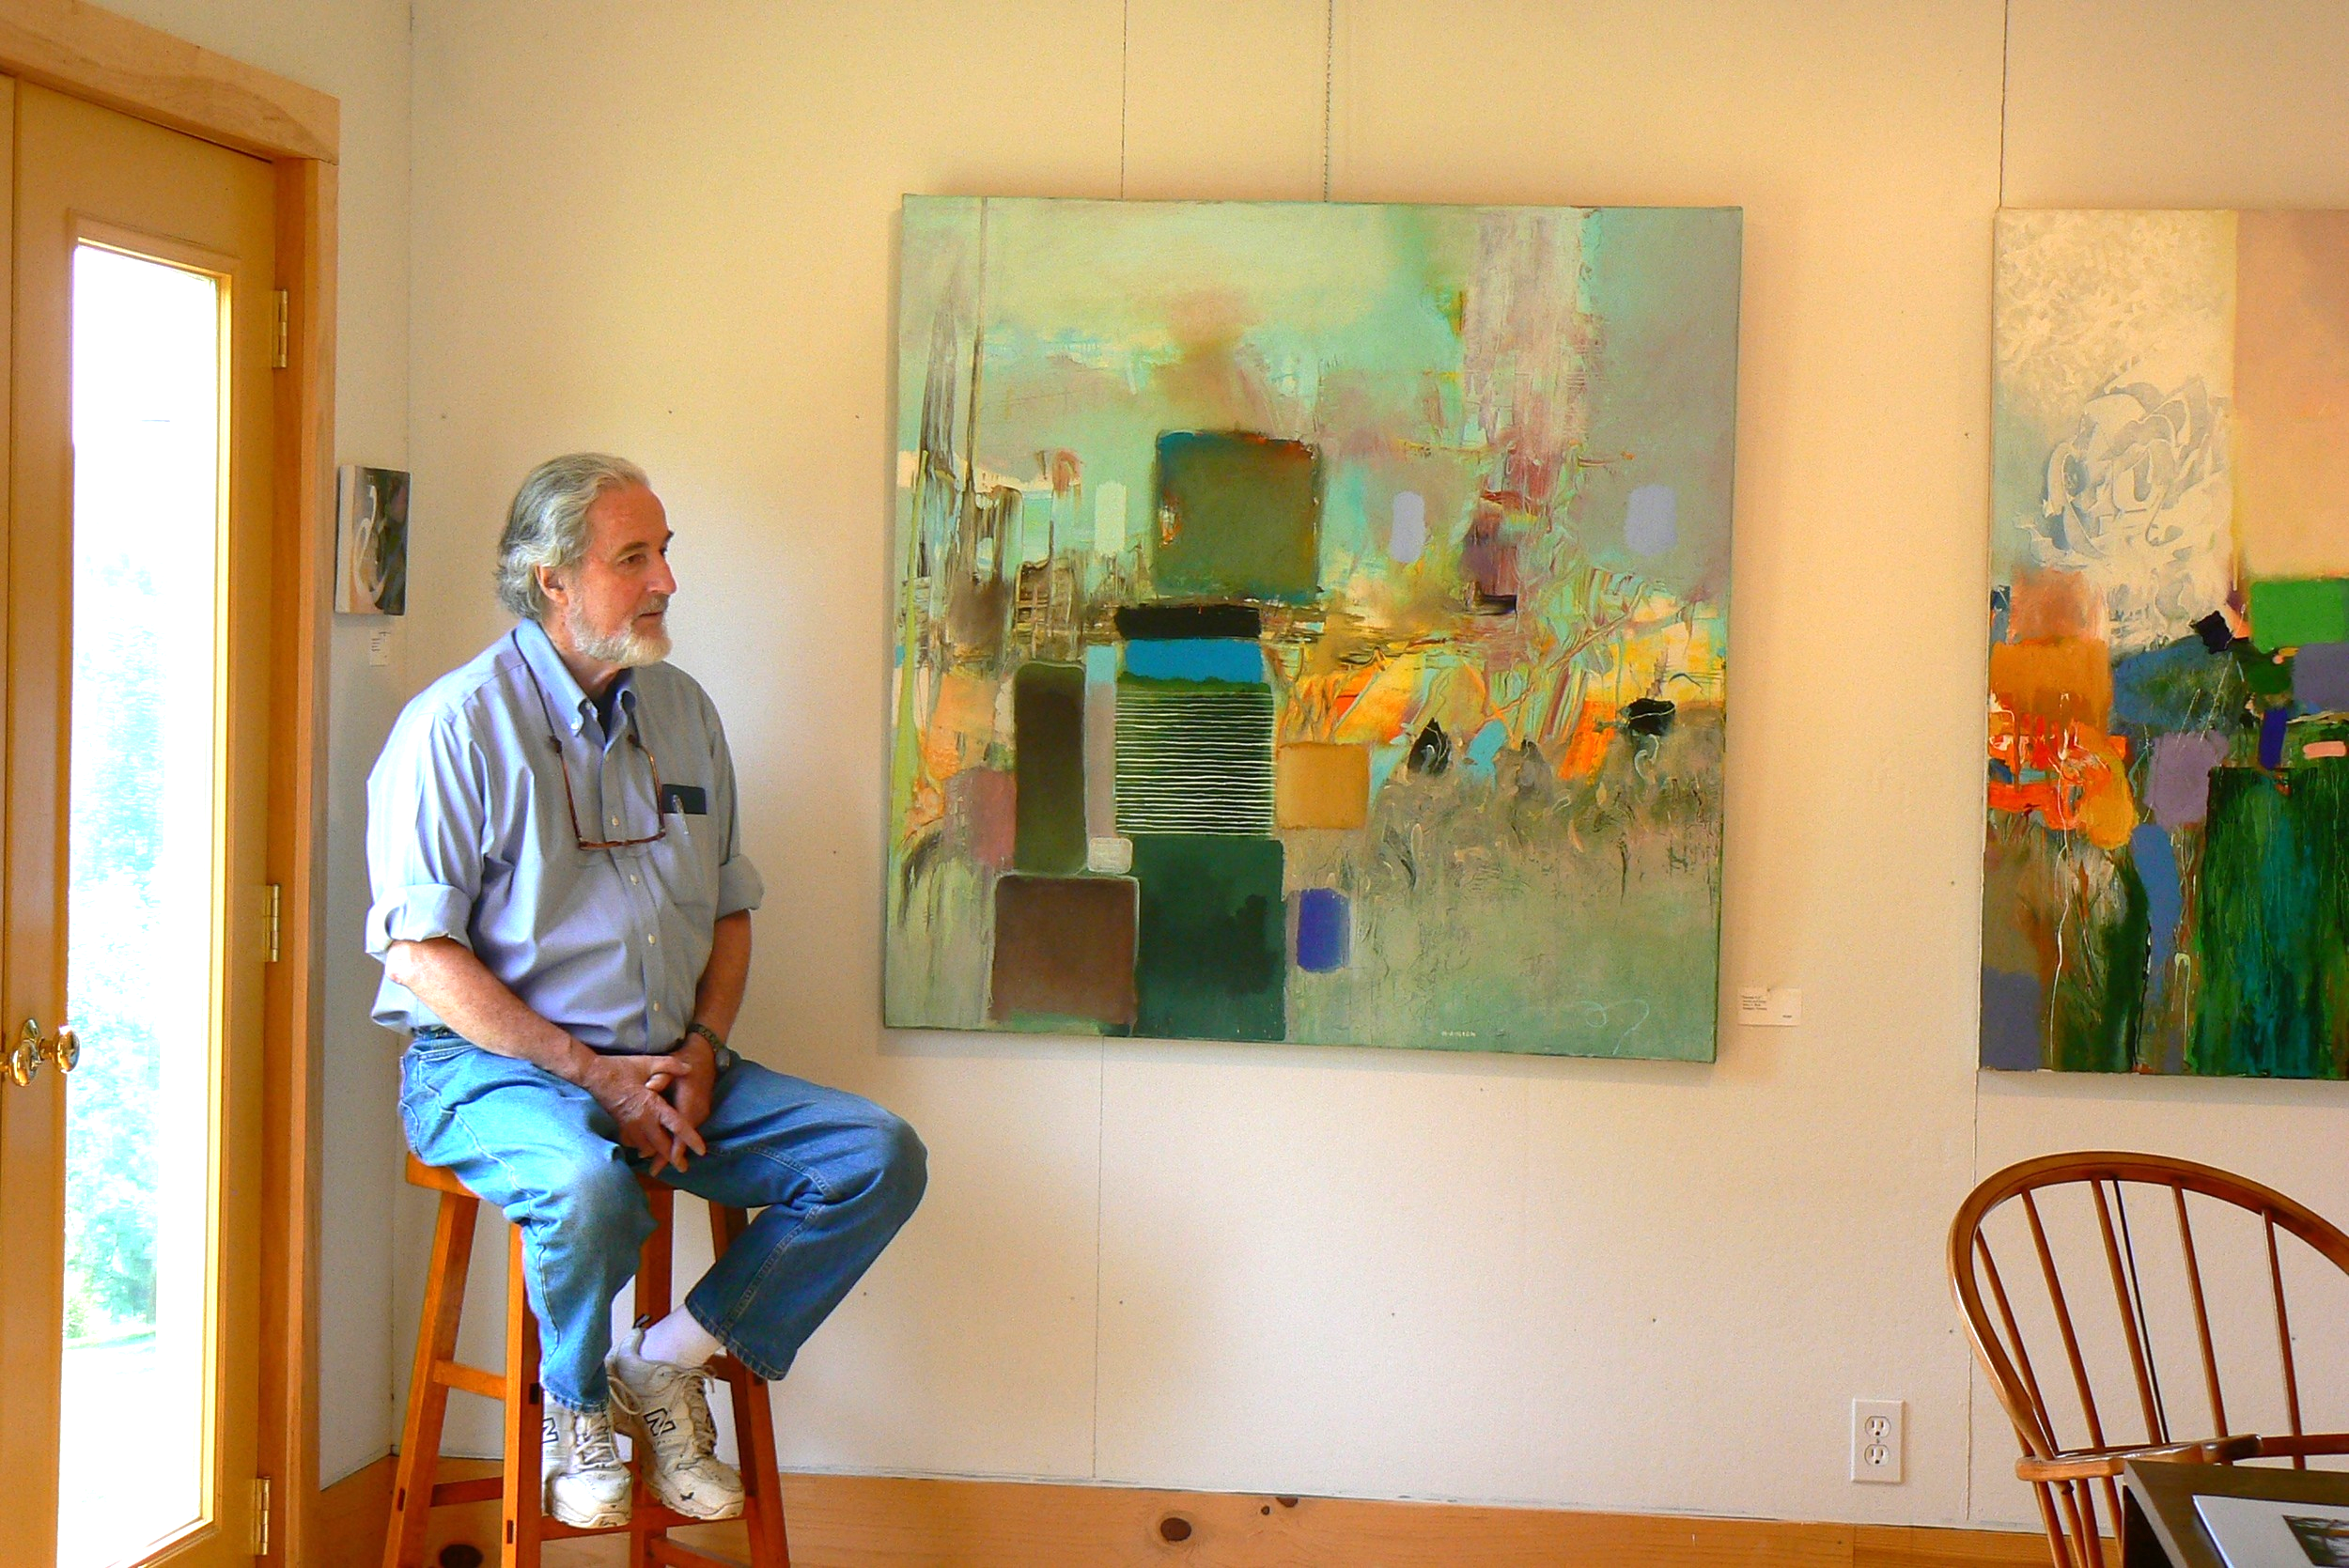 TOWLE HILL GALLERY, CORINTH, VT